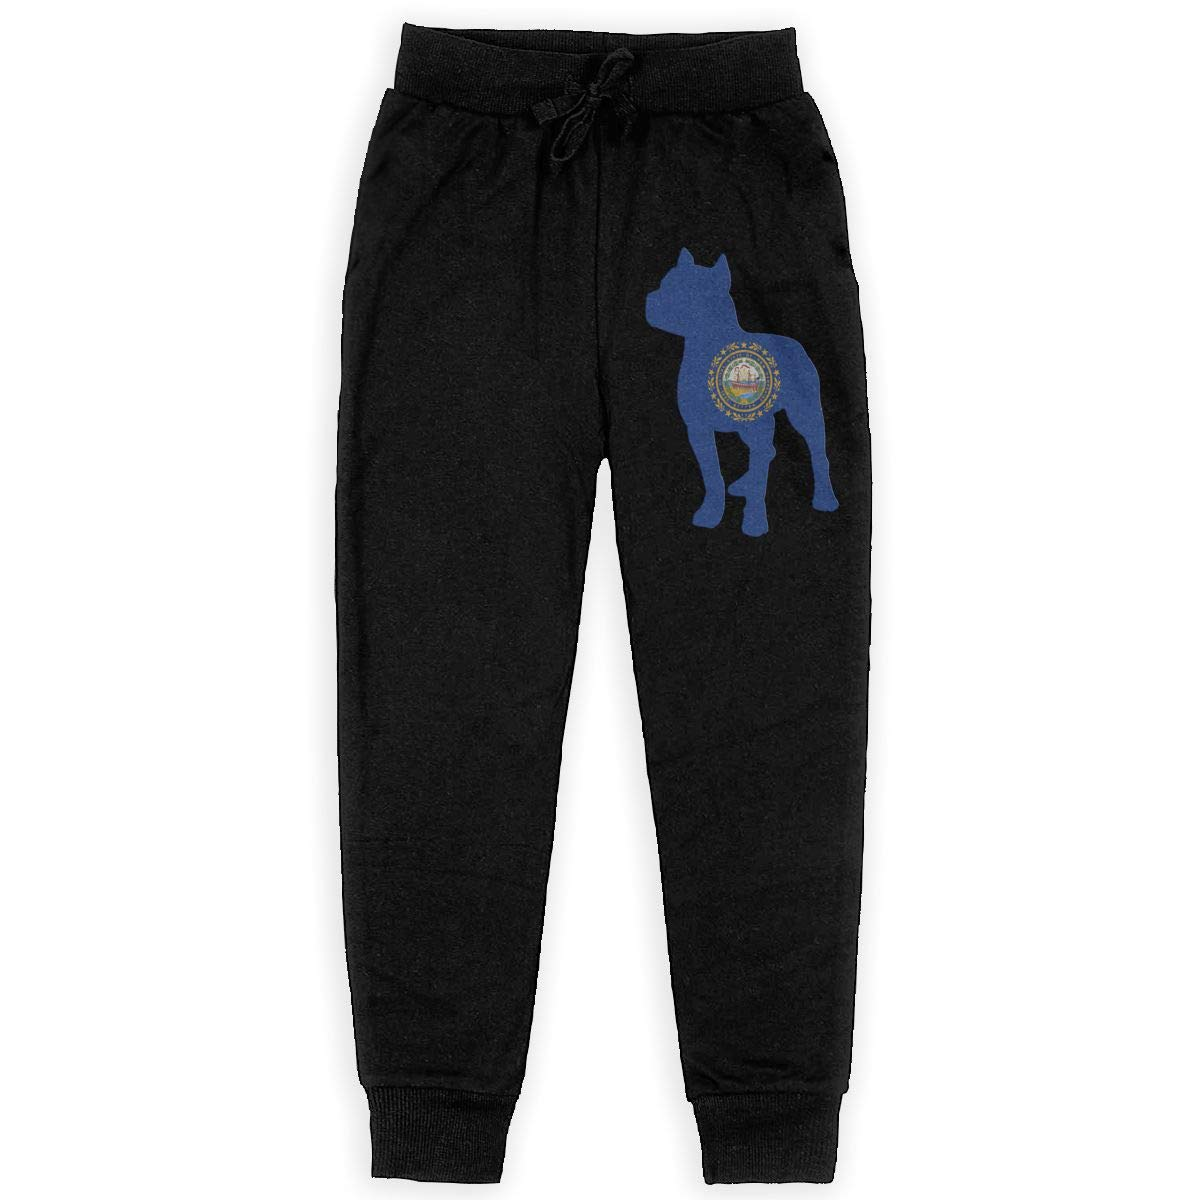 Teenager Warm Fleece Active Pants for Teenager Boys WYZVK22 Patriotic Pitbull Hampshire State Flag Soft//Cozy Sweatpants